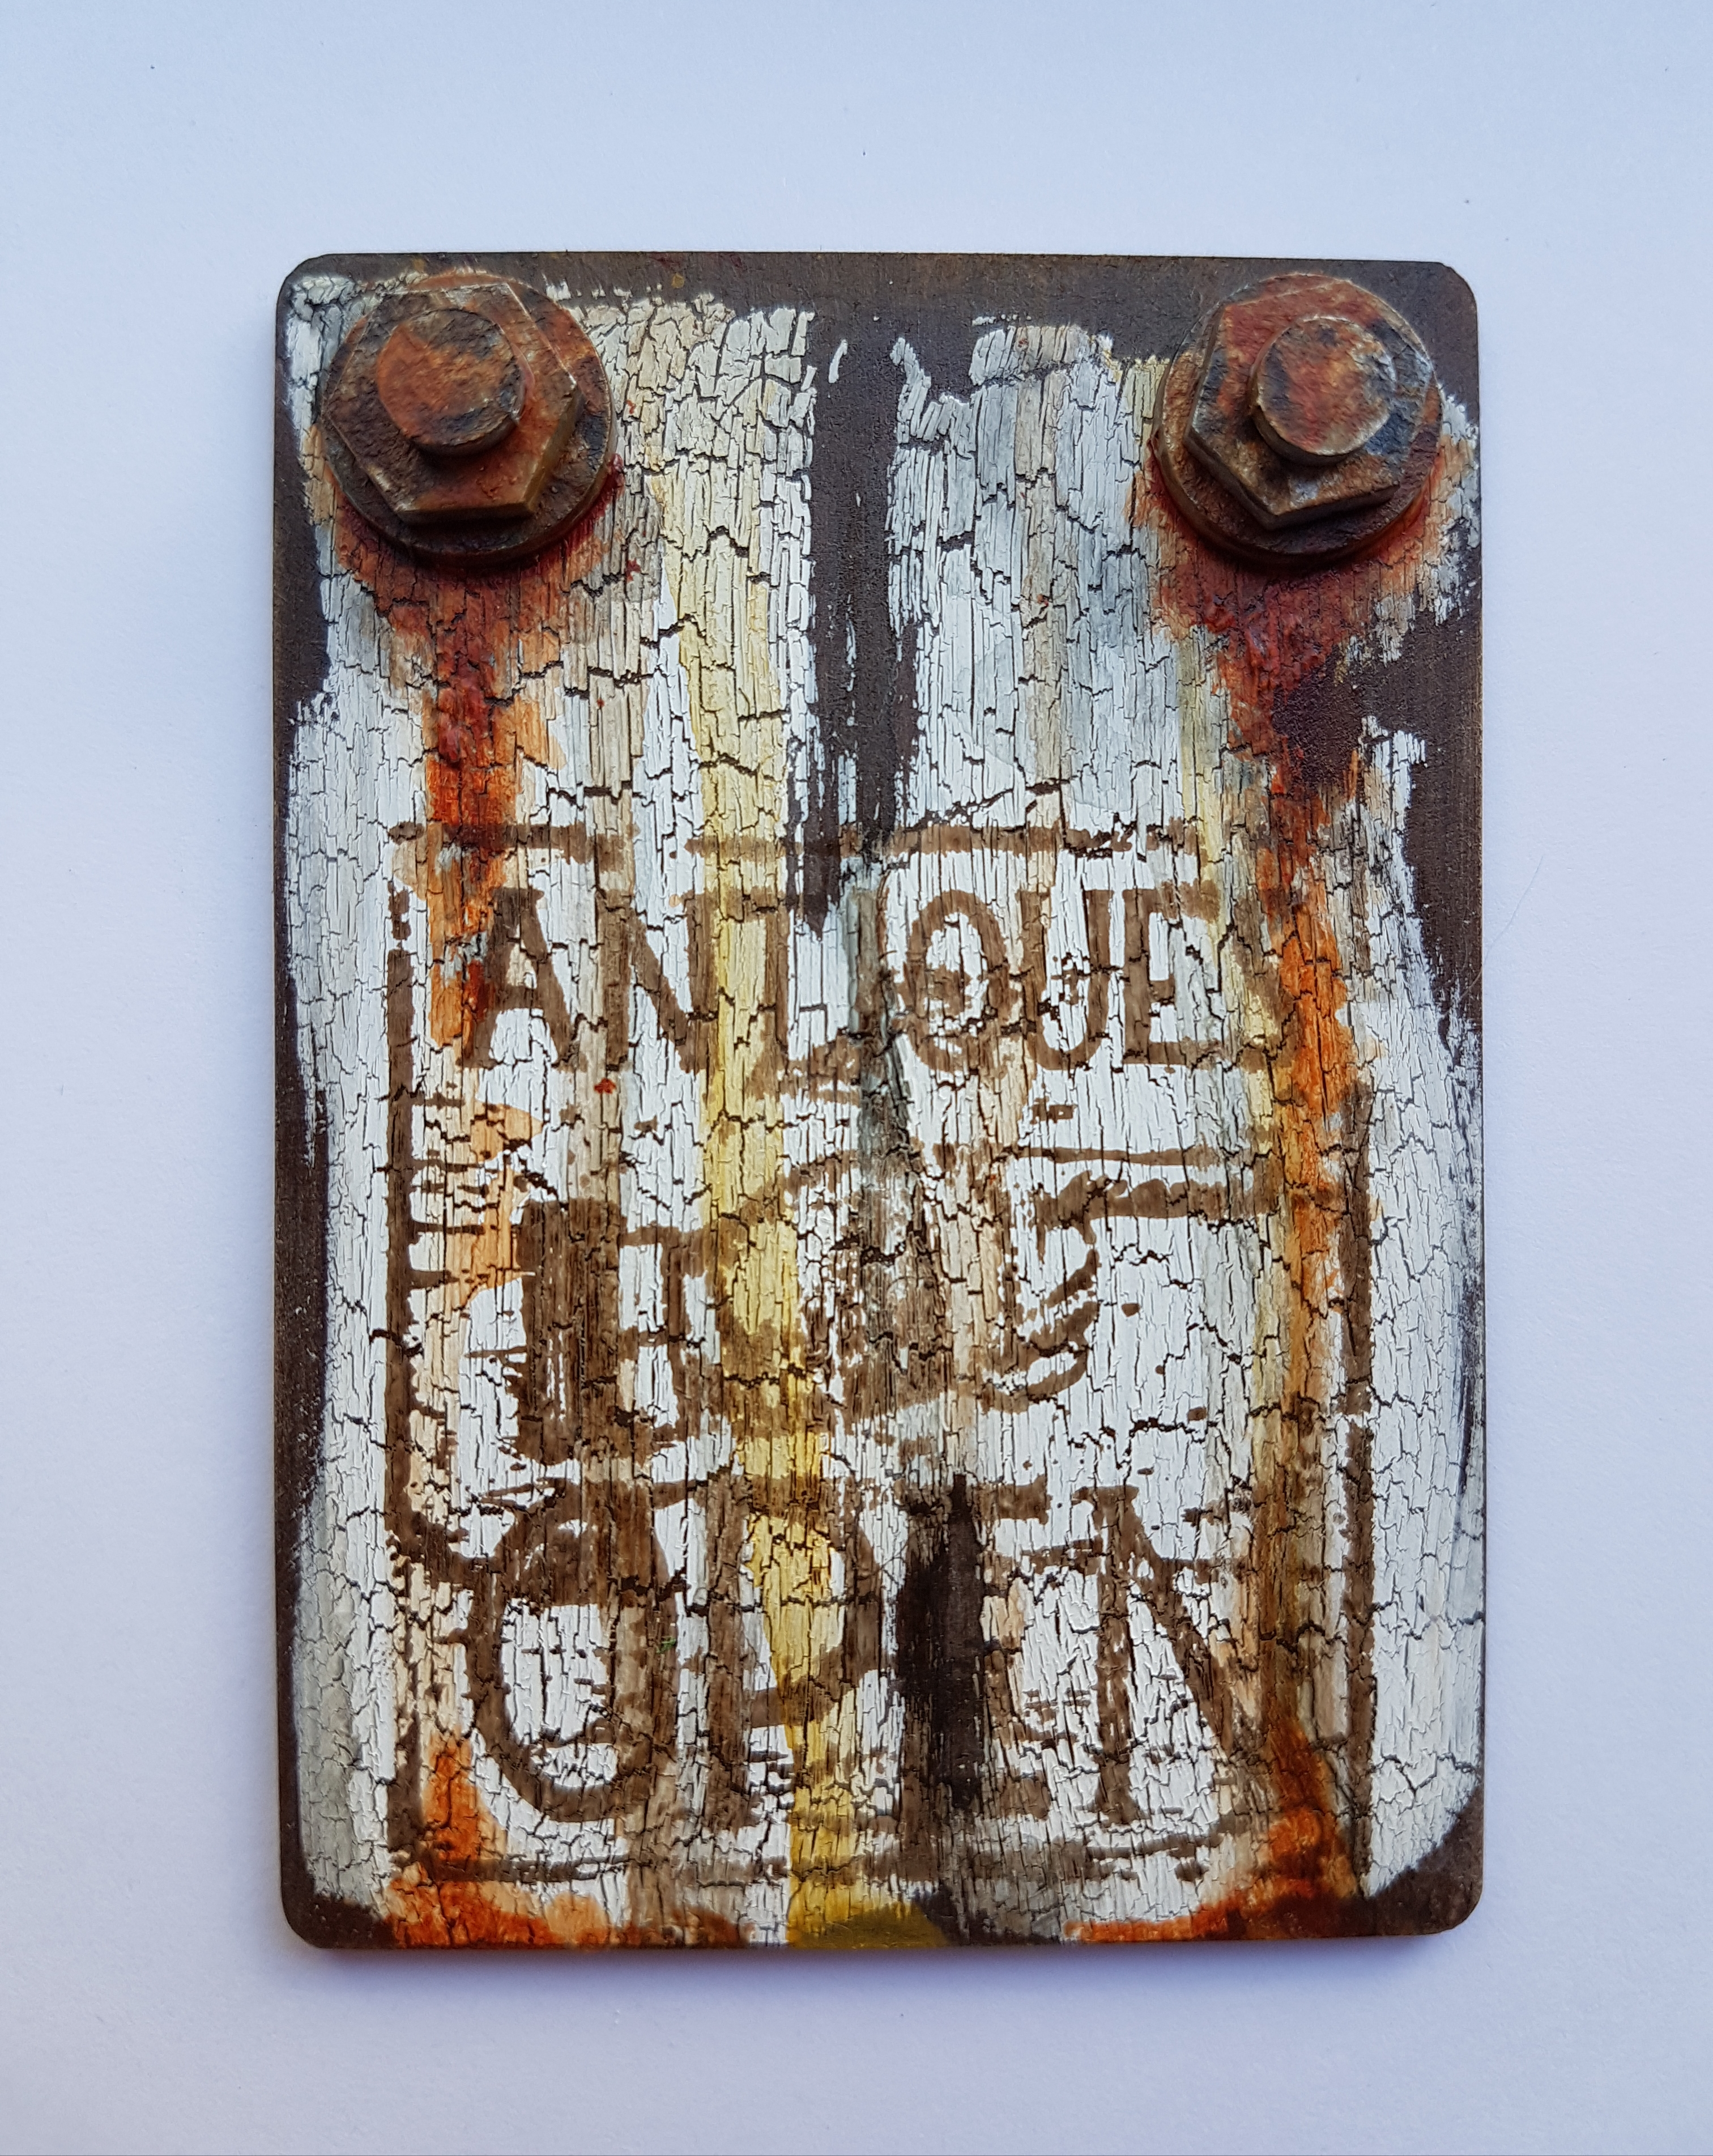 ATC - Antique Sign